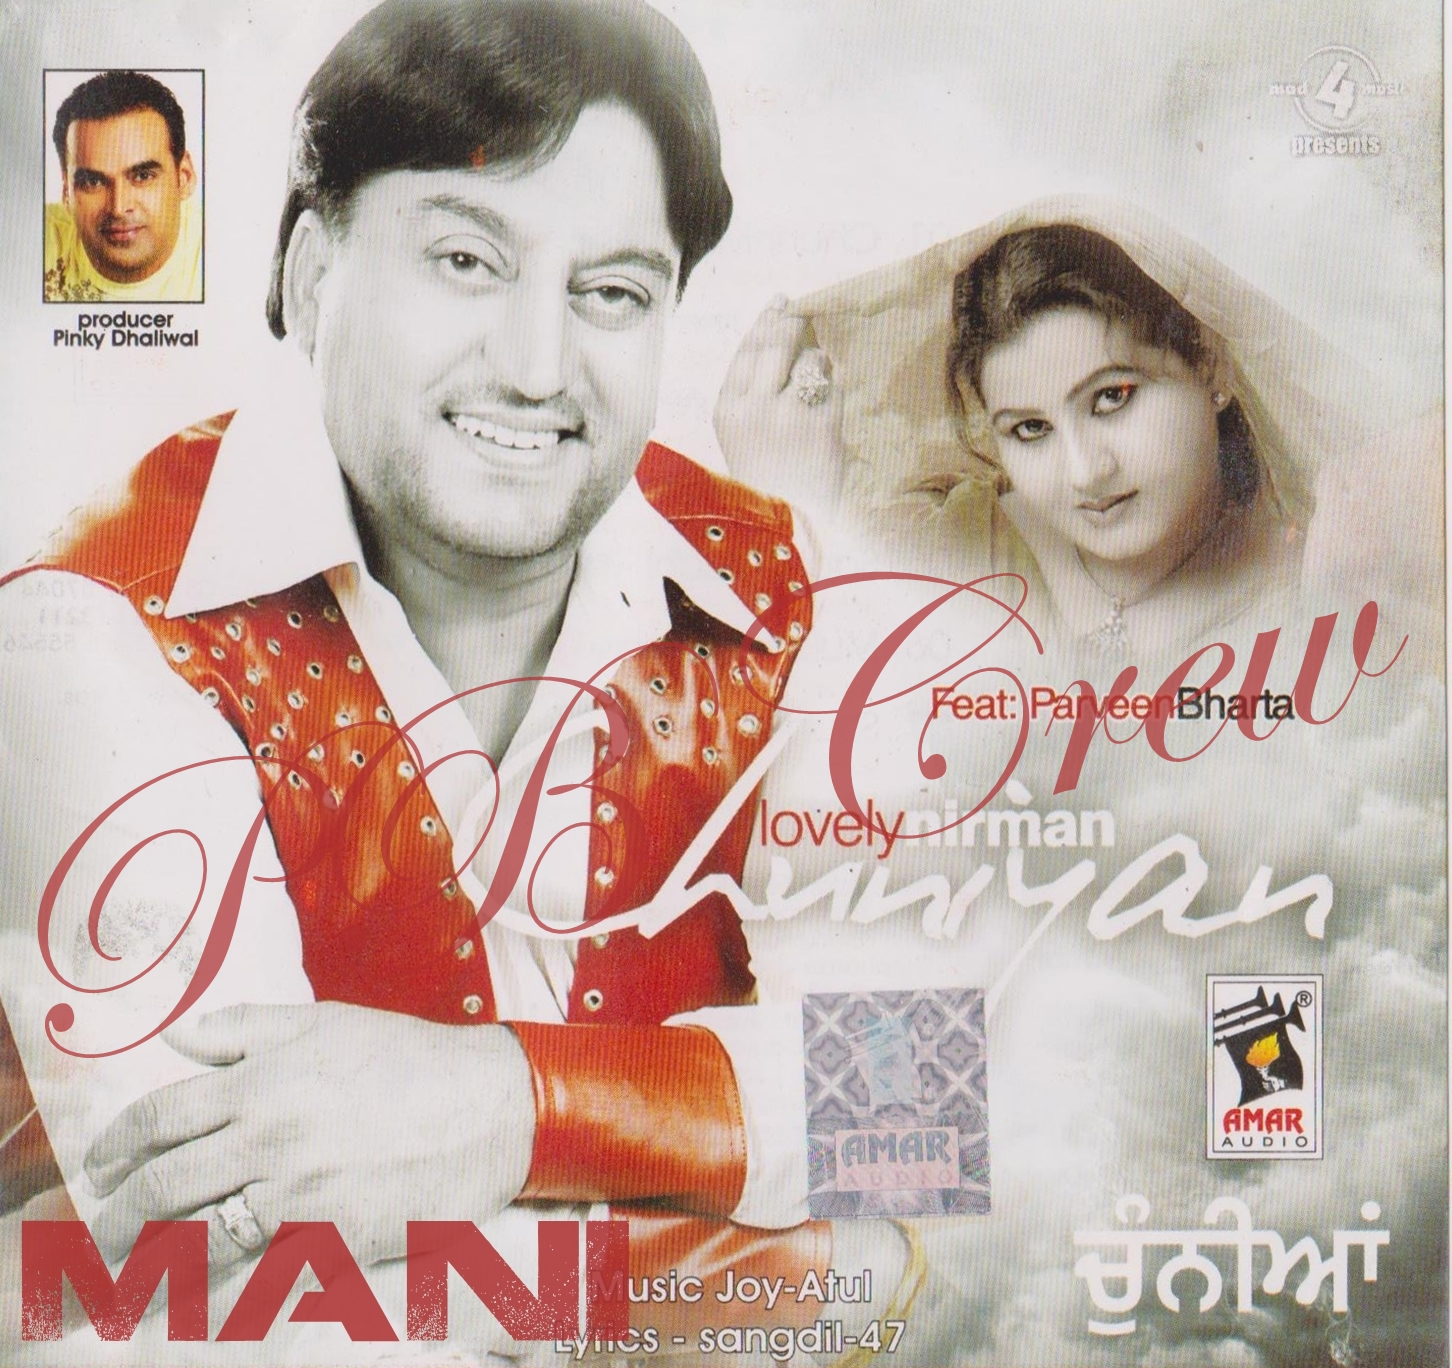 Chunniyan By Lovely Nirman & Parveen Bharta Mp3 Songs